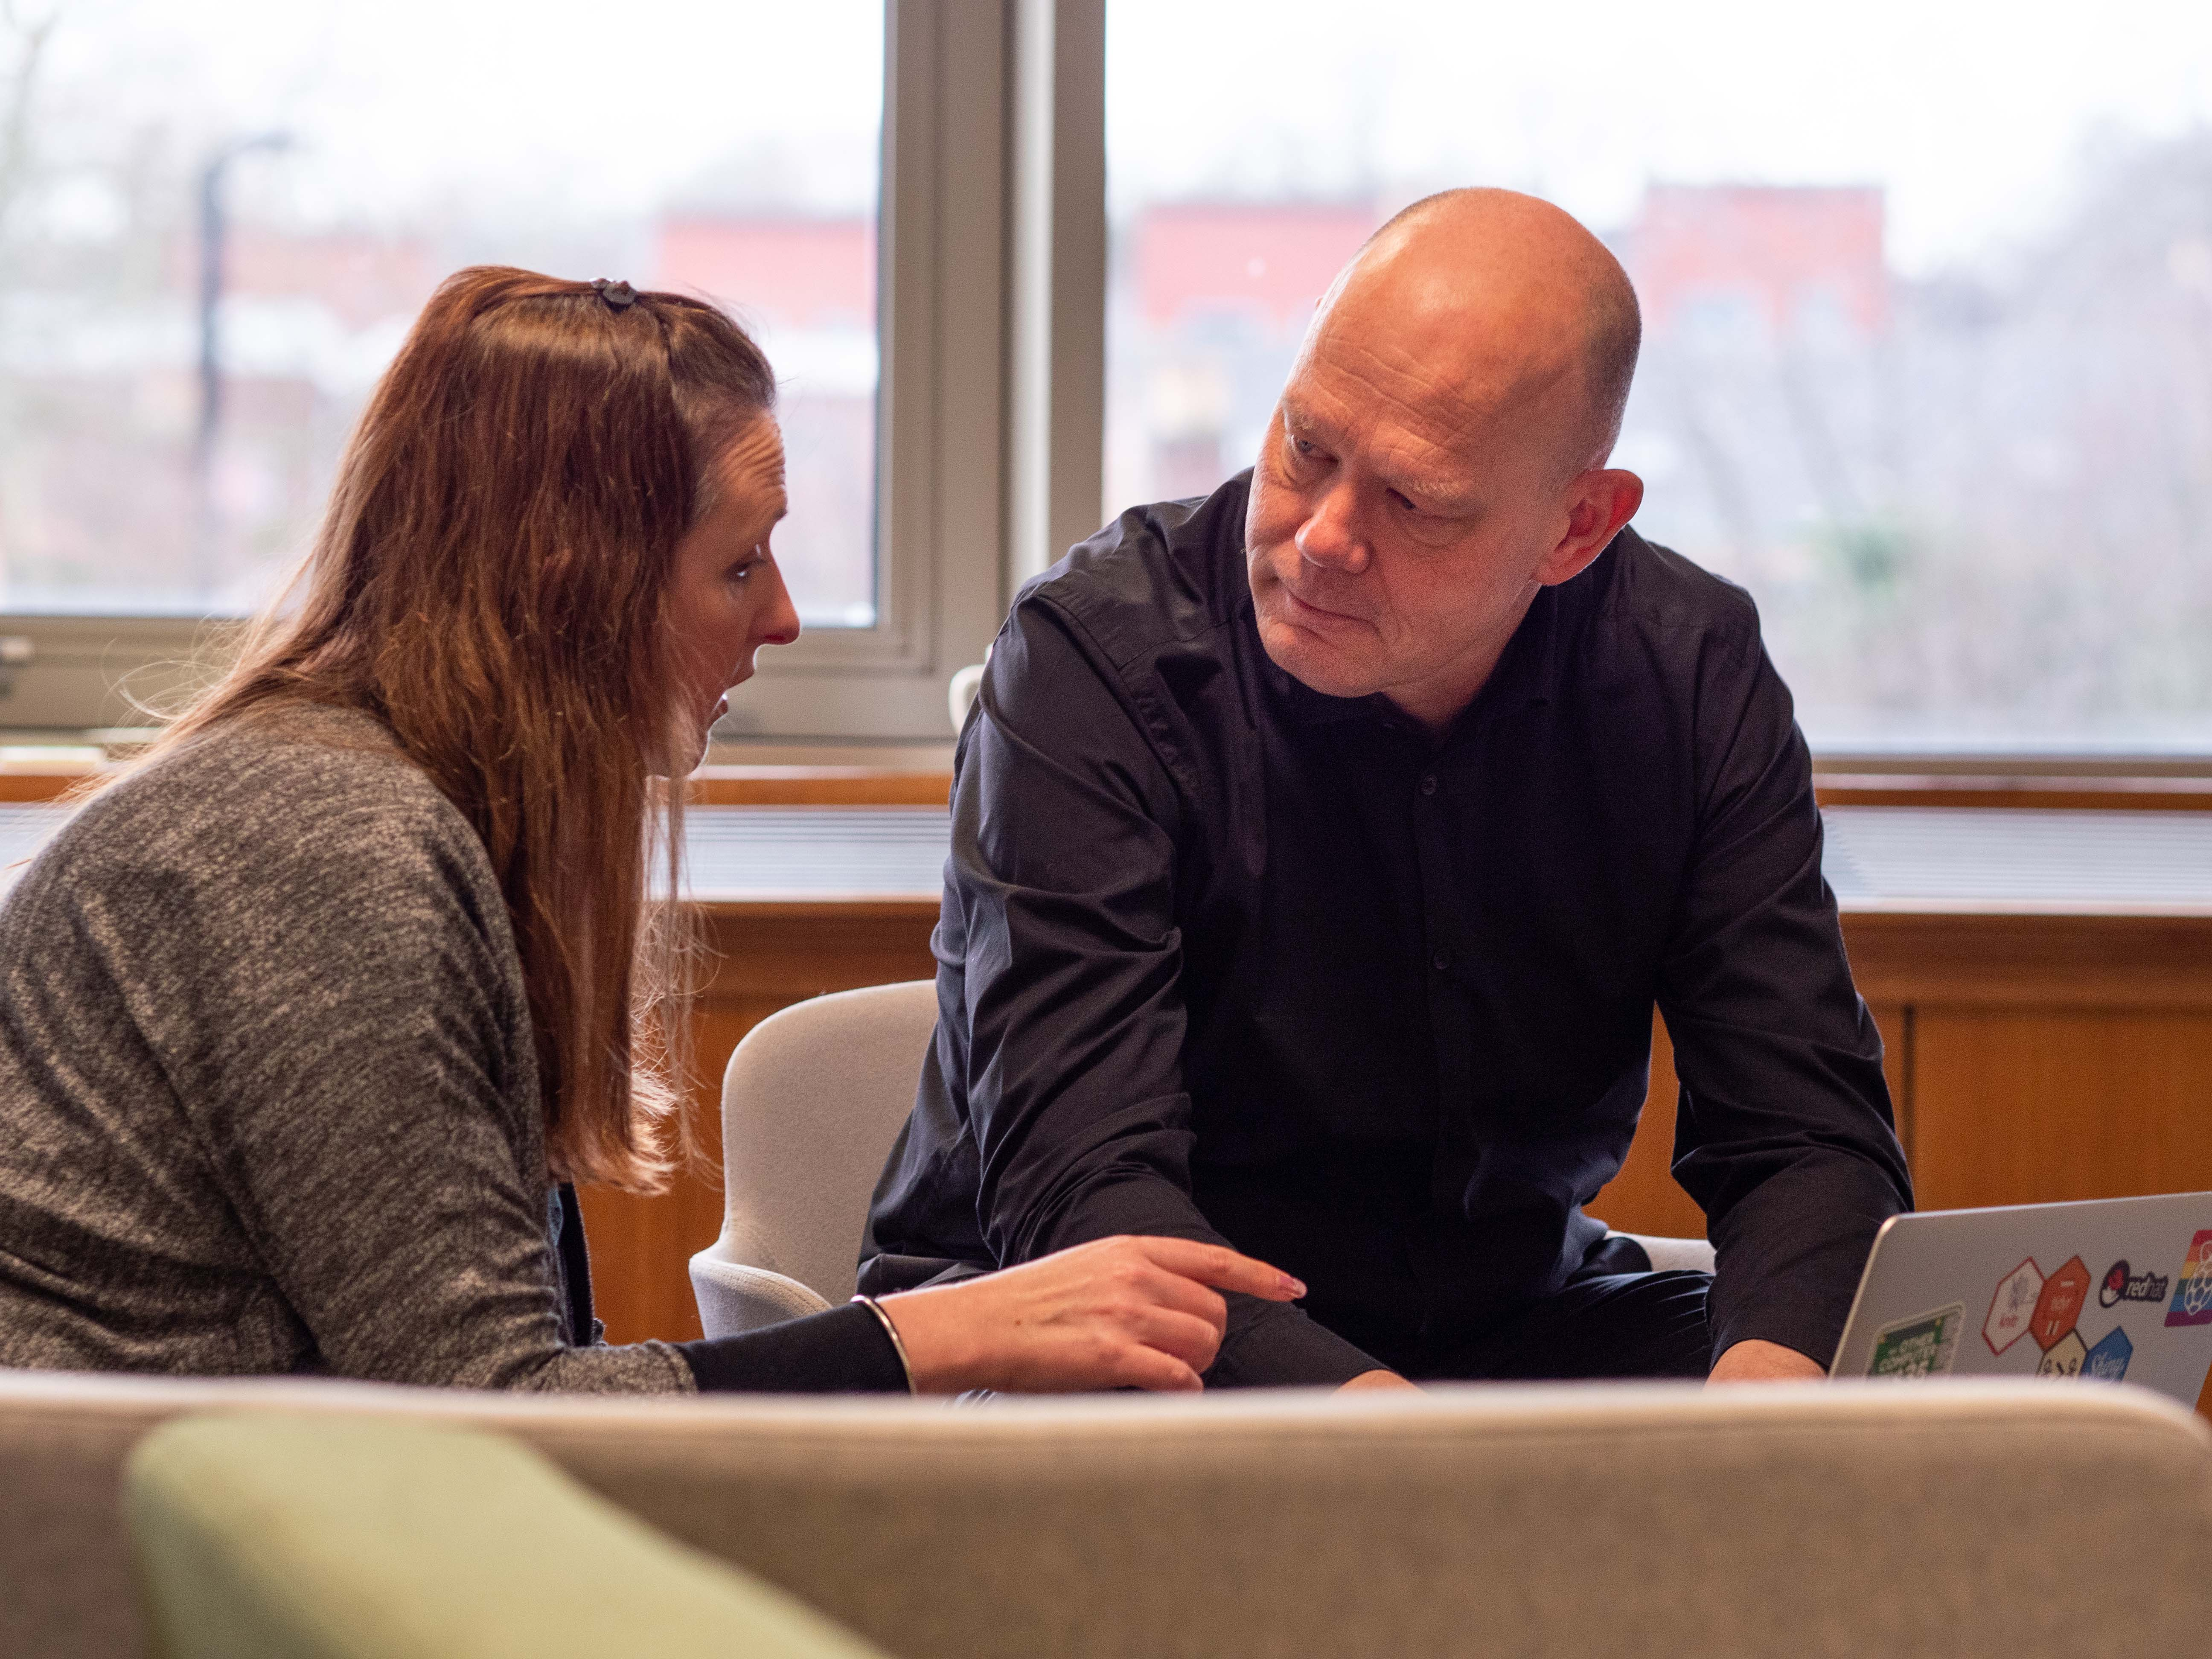 Pieter, wearing a black shirt, sitting in an informal meeting area, talking to a female colleague